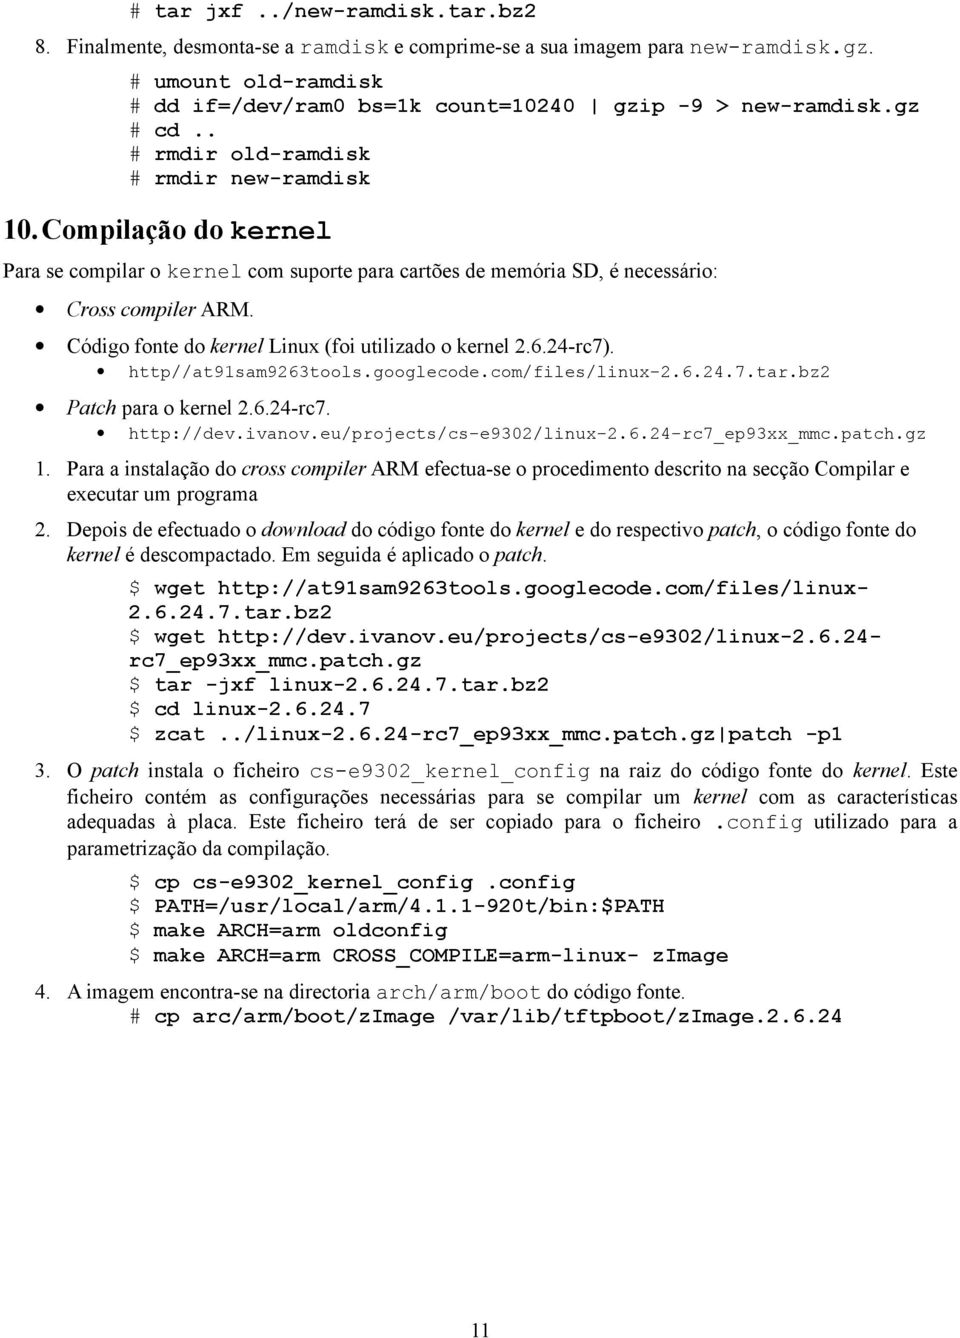 Código fonte do kernel Linux (foi utilizado o kernel 2.6.24-rc7). http//at91sam9263tools.googlecode.com/files/linux-2.6.24.7.tar.bz2 Patch para o kernel 2.6.24-rc7. http://dev.ivanov.